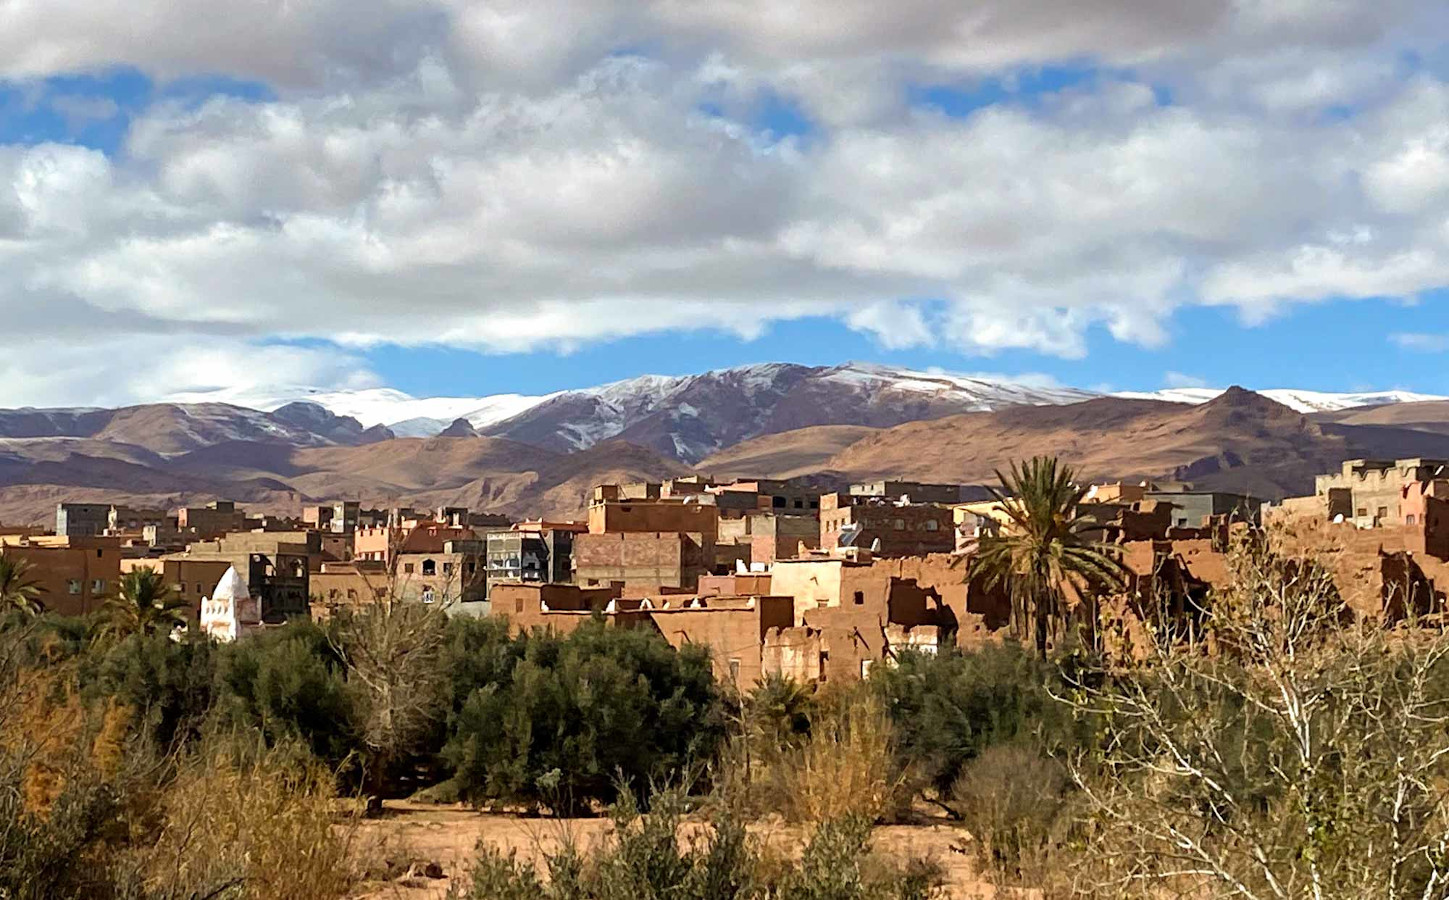 A trip to the High Atlas Mountains is one of the most common day trip tours in Morocco